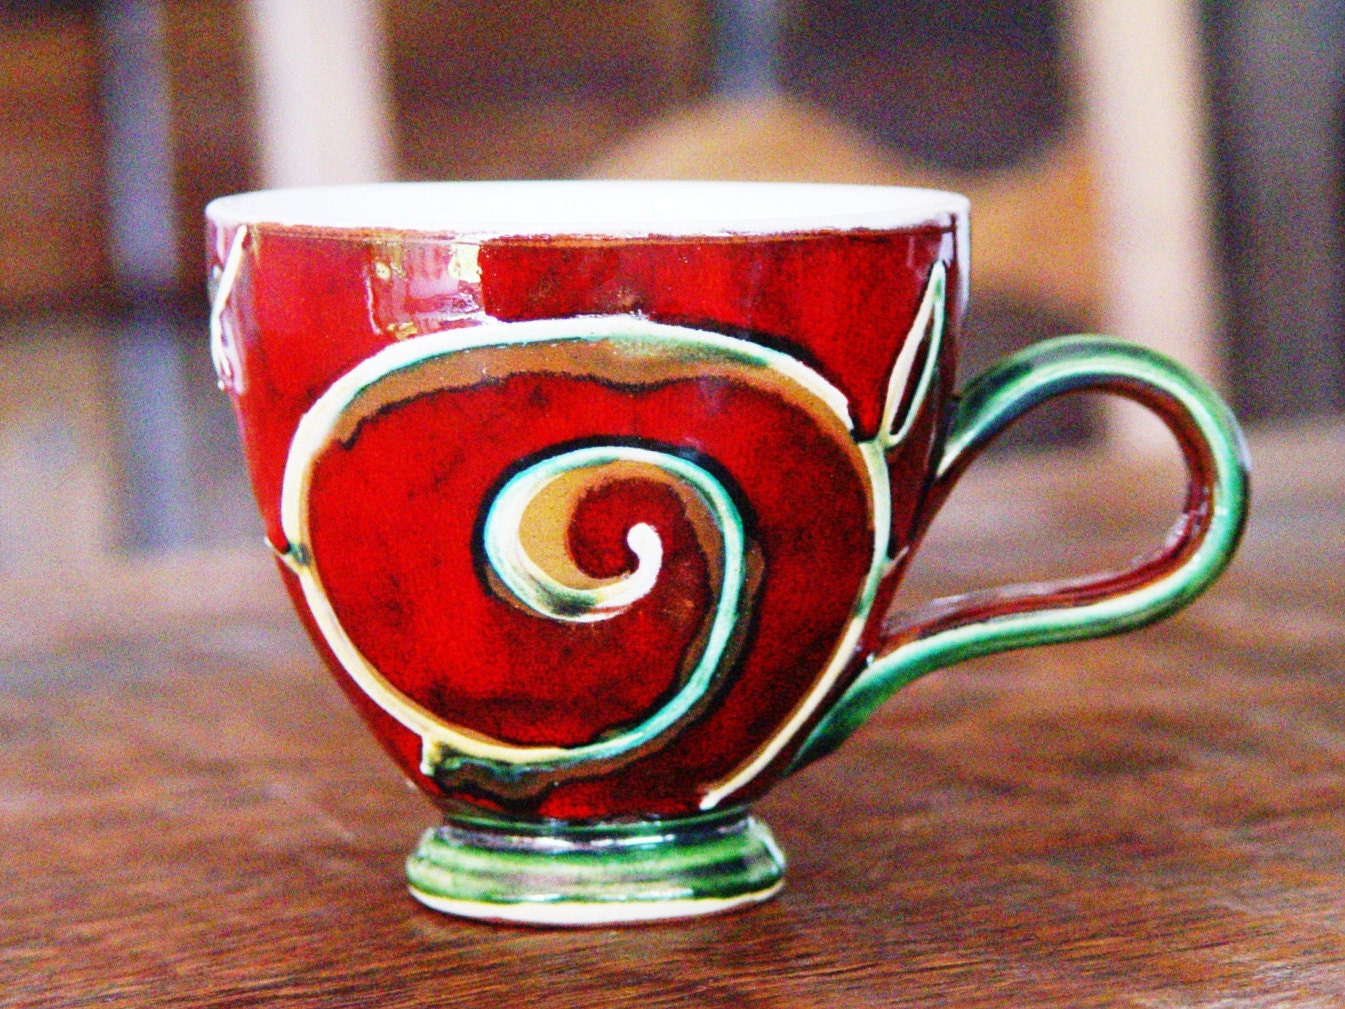 Red And Green Pottery Coffee Mug Handmade Ceramic Cup Unique Cute Teacup Danko Pottery Ceramic Fun Gift Artistic Pottery